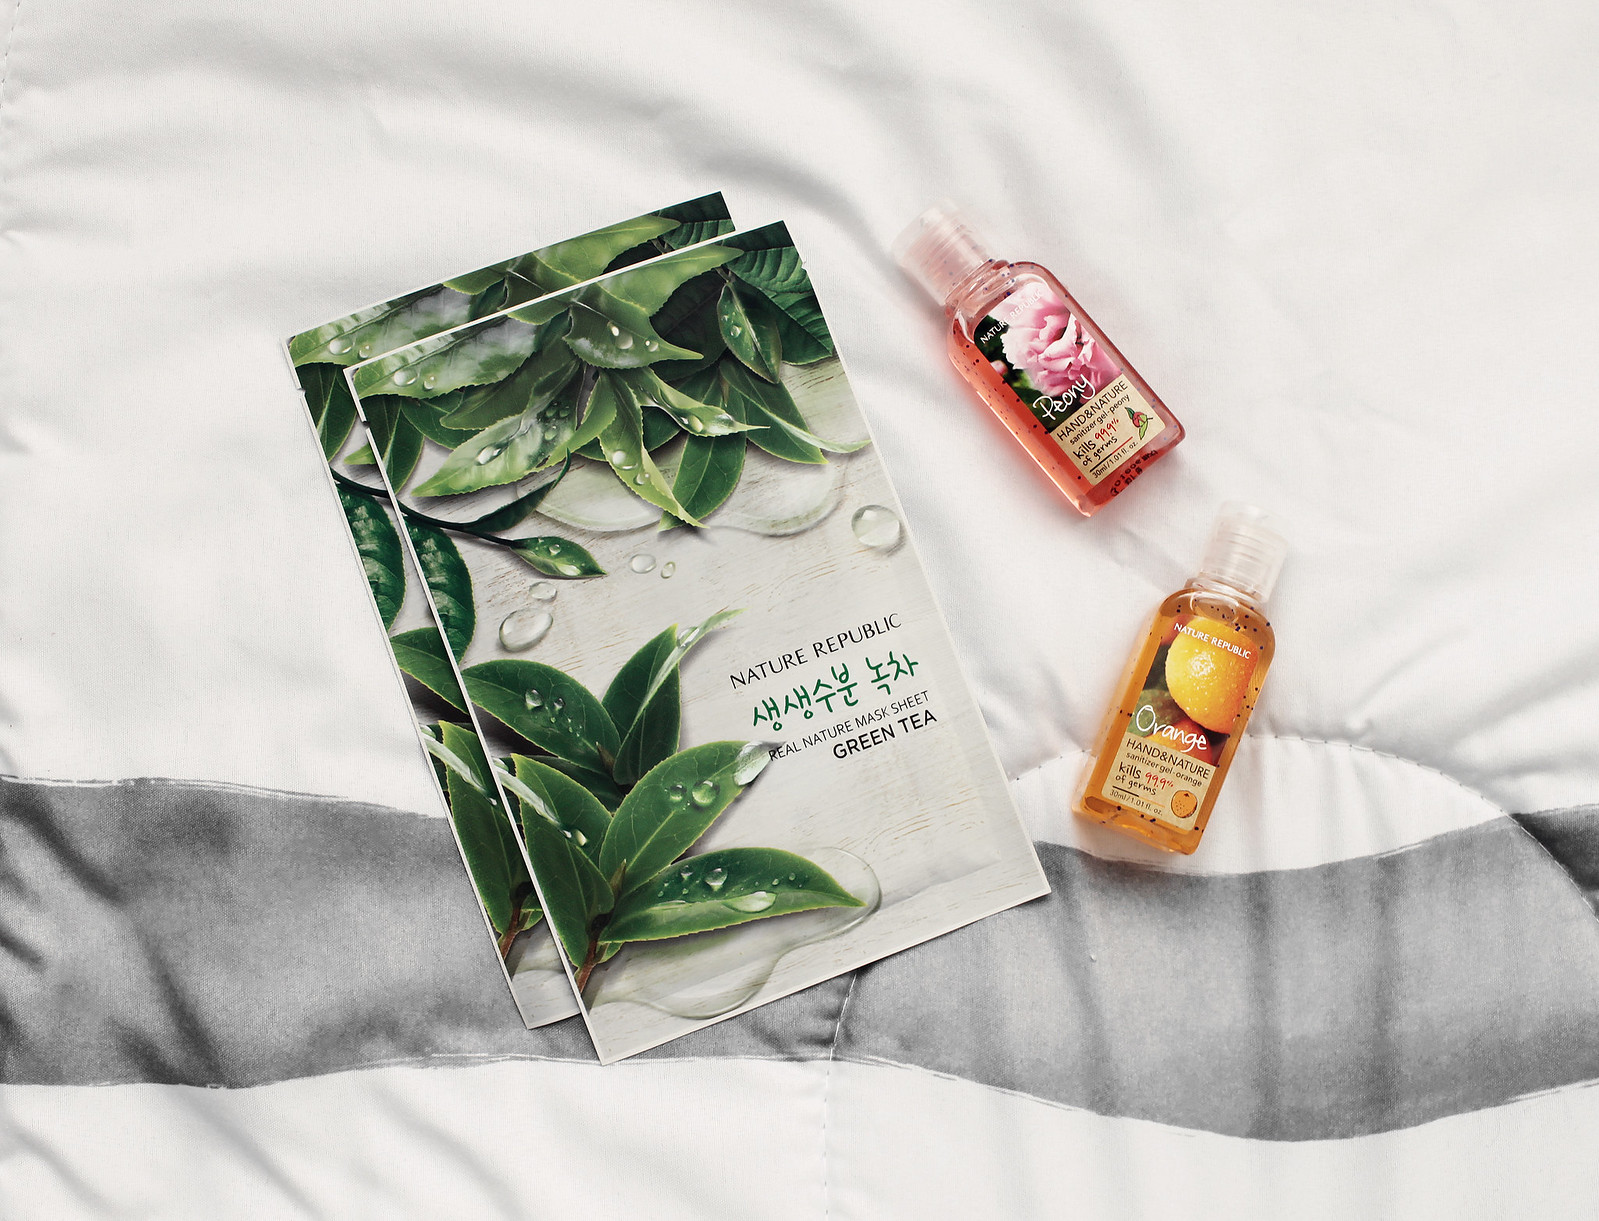 3268-nature-republic-sheetmasks-handsanitizers-beauty-lifestyle-elizabeeetht-clothestoyouuu